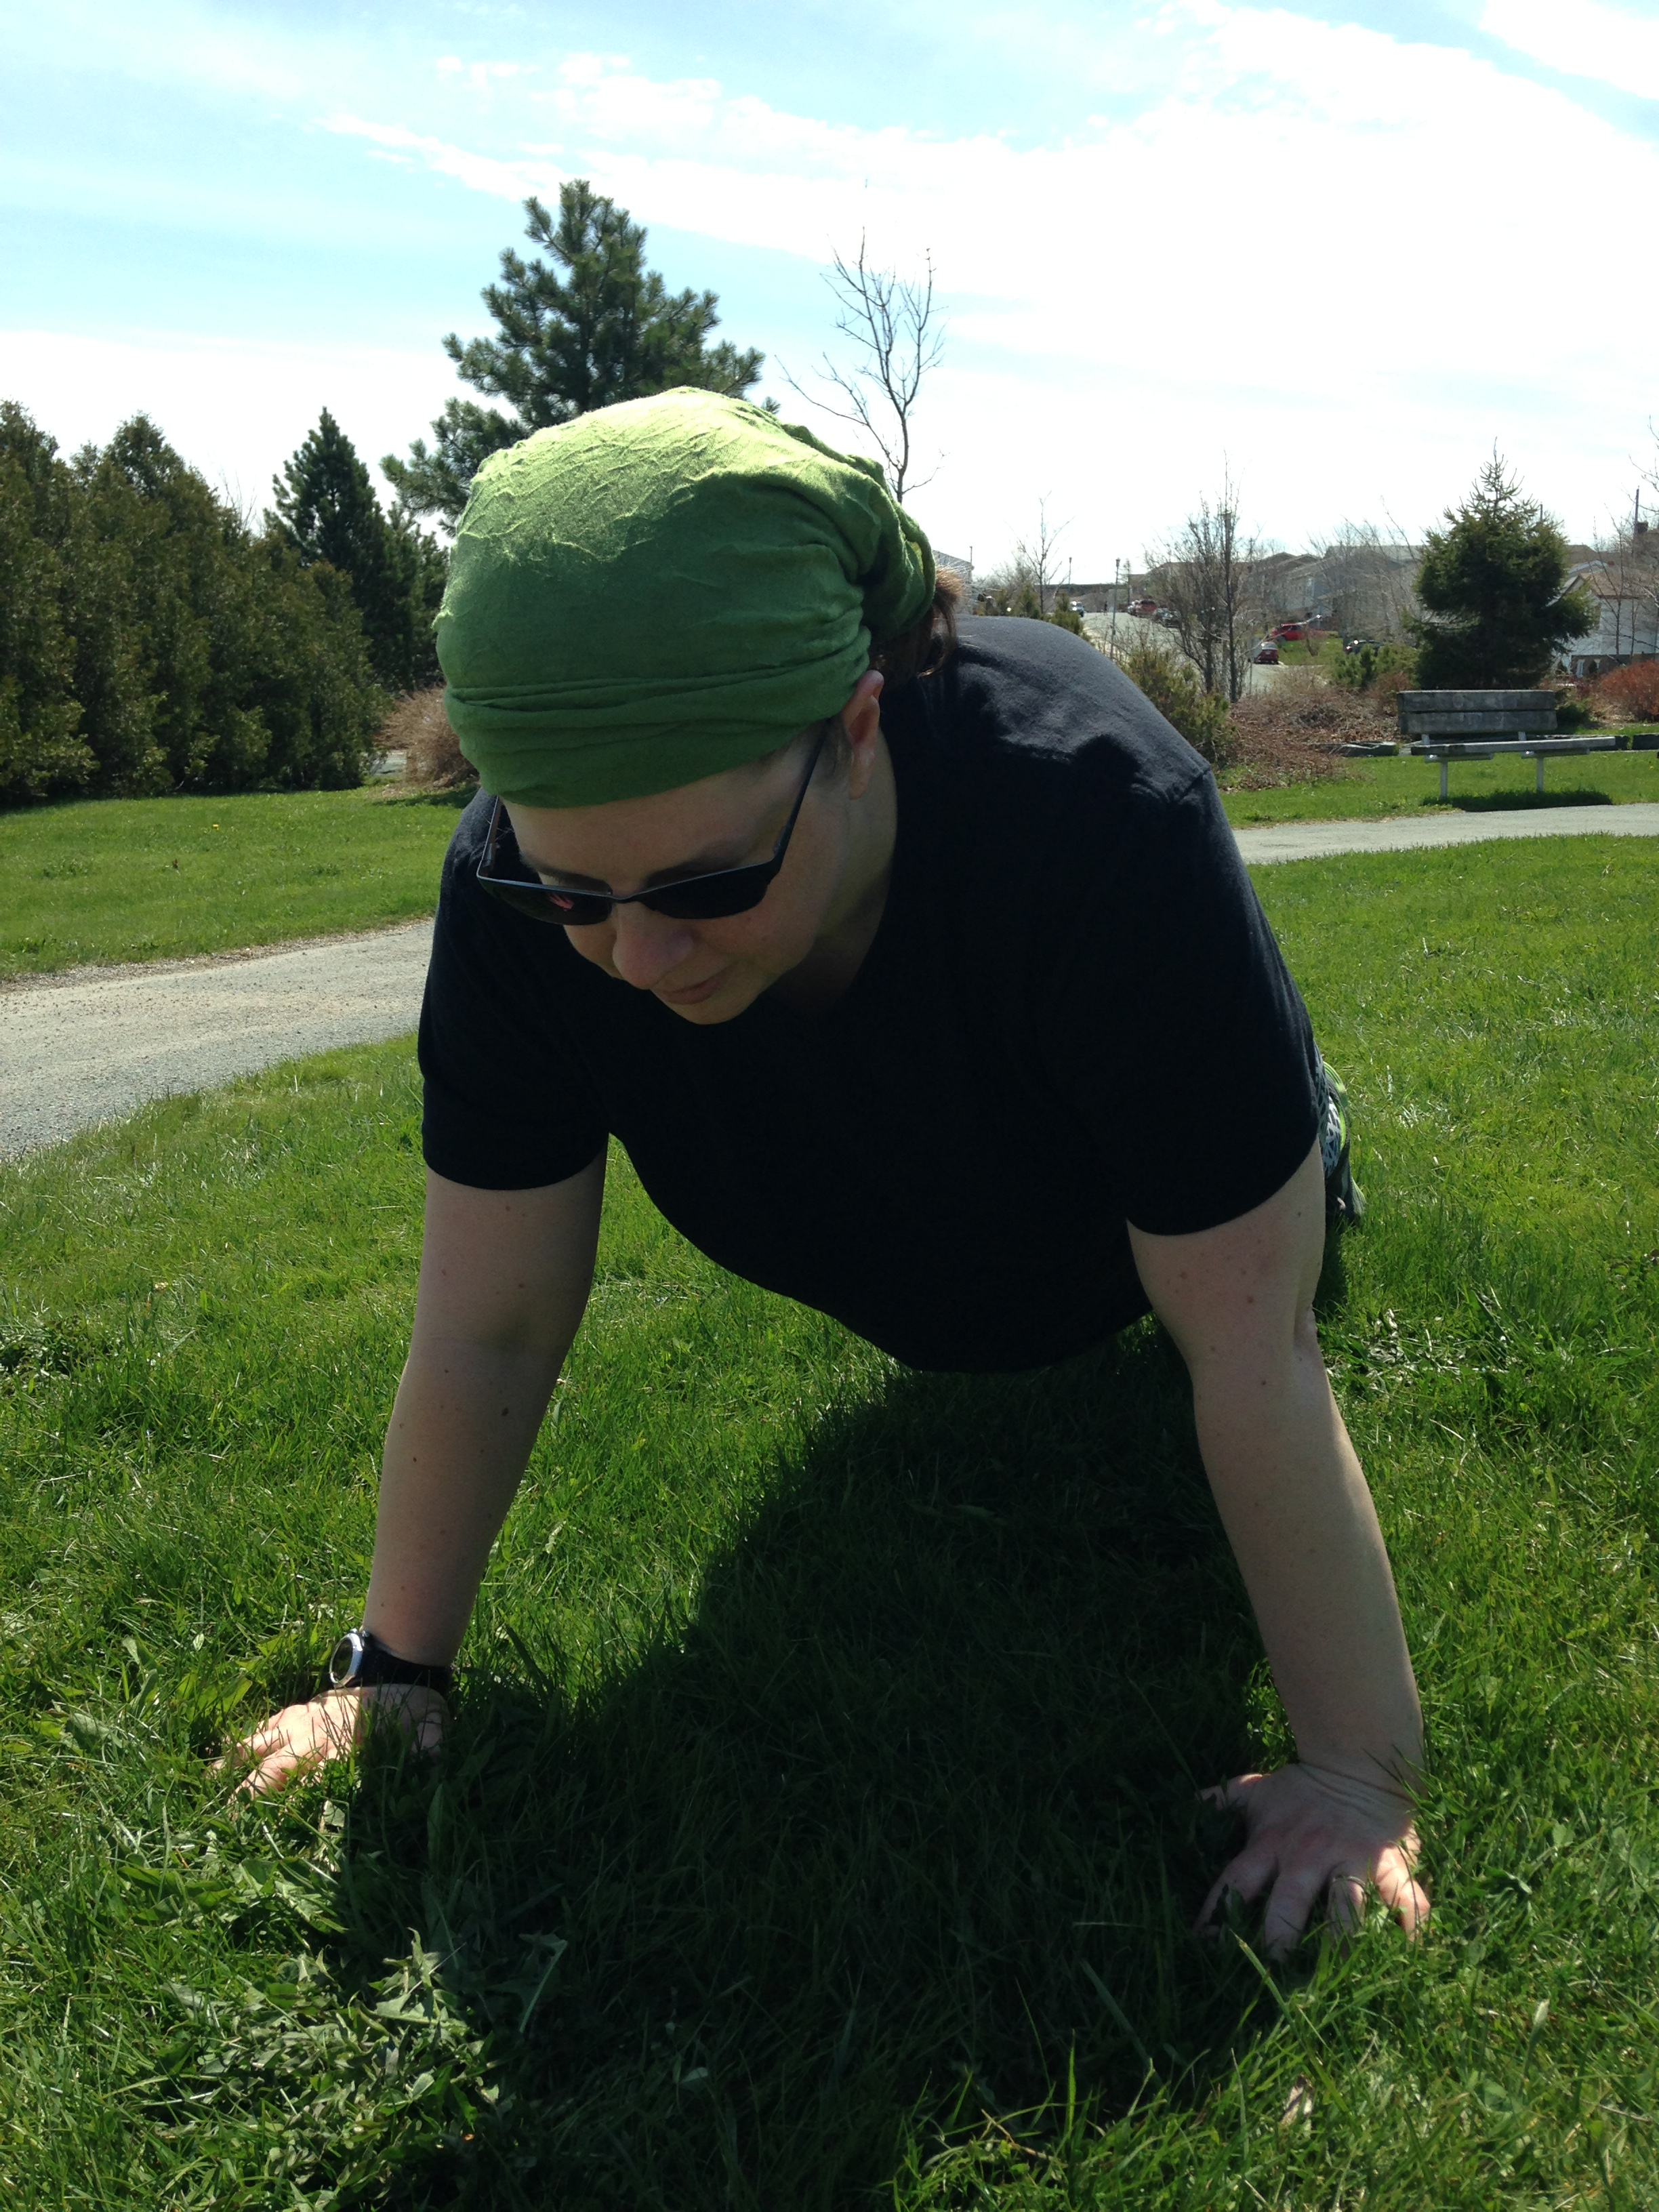 The author, wearing sunglasses, a green bandanna, a black shirt, and grey and black leggings, does a push-up on the grass in a field on a sunny day.